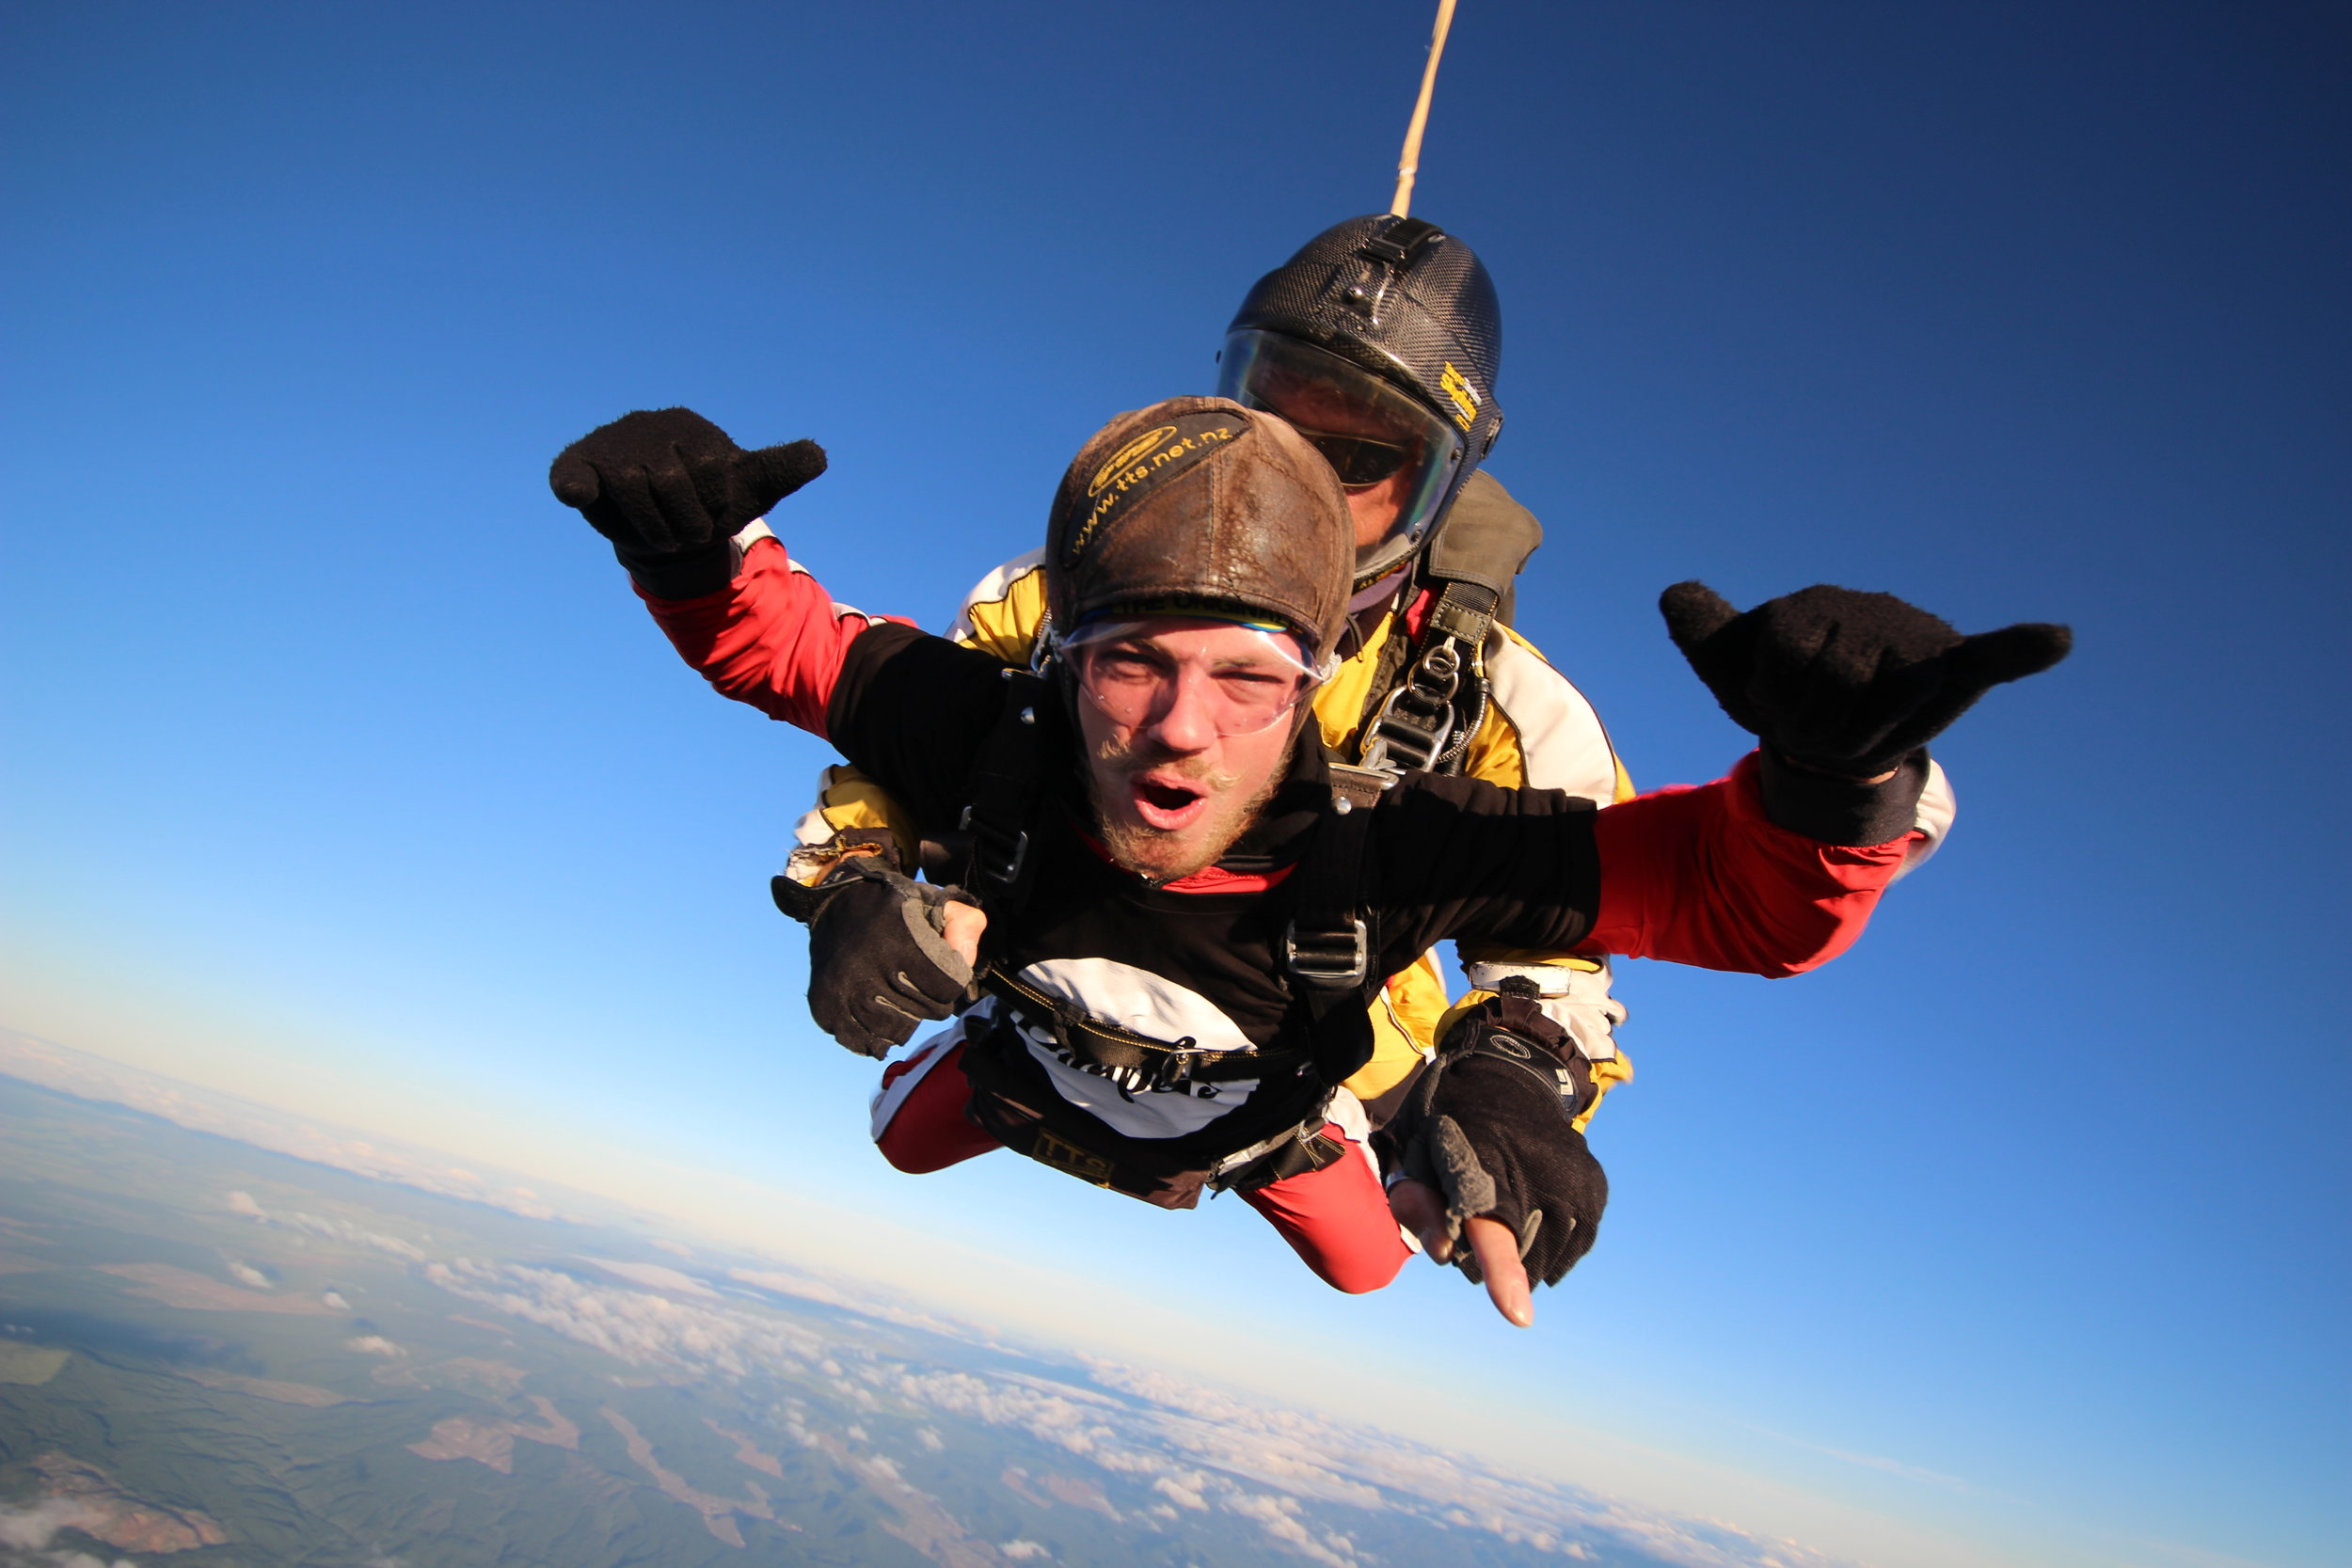 We offer discounts on all tourism activities so you can go MAD on your Kiwi Adventure!